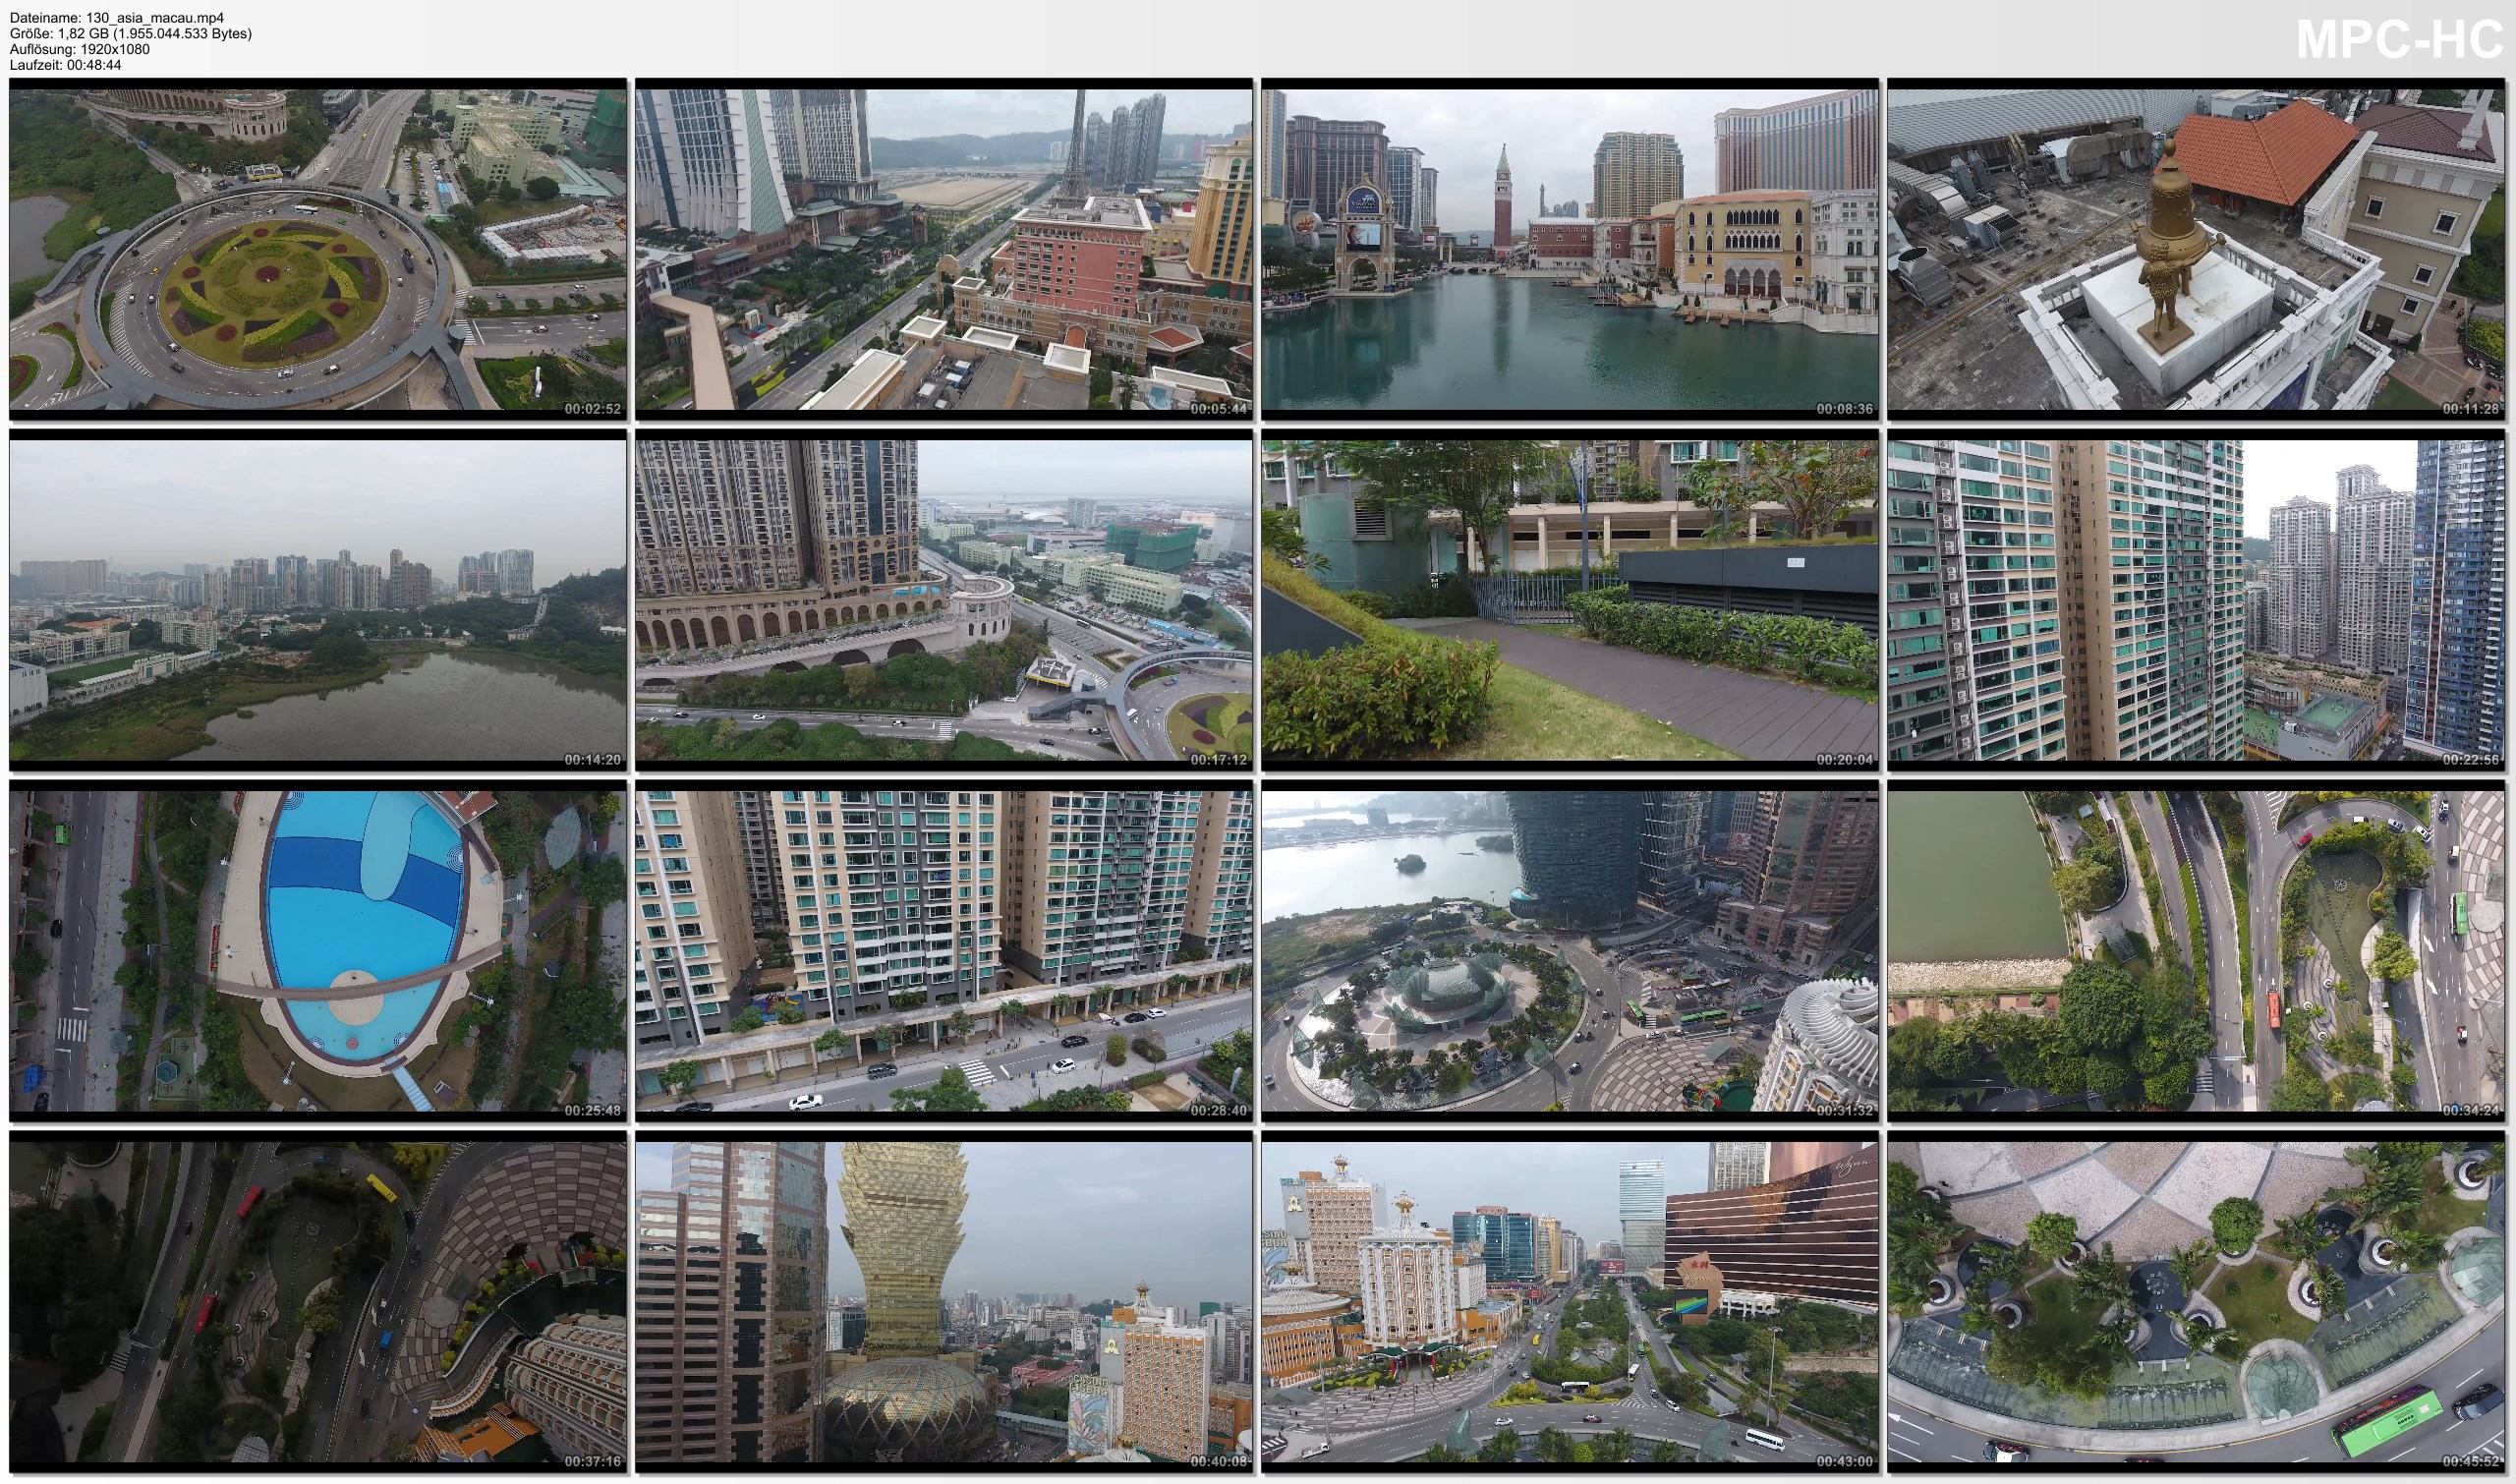 Drone Pictures from Video 【4K】Drone RAW Footage | MACAU 2019 | UltraHD Stock Video